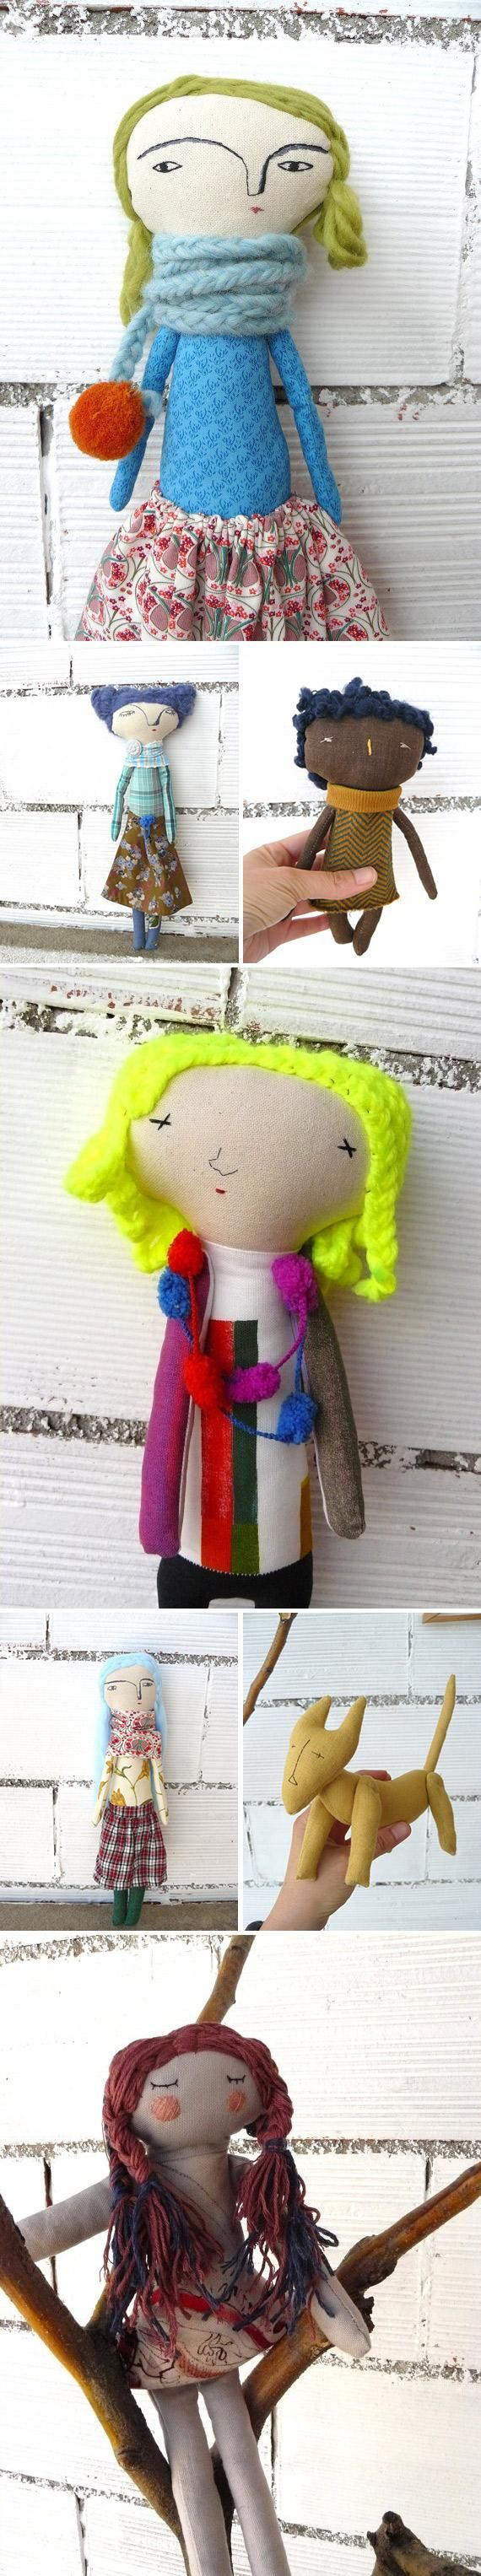 Madrid-based maker Leticia Oyola's handmade cotton toys are no run-of-the-mill rag dolls. See the rest of her styles (or order a custom design) in her Etsy shop, AntonAntonThings. #etsy